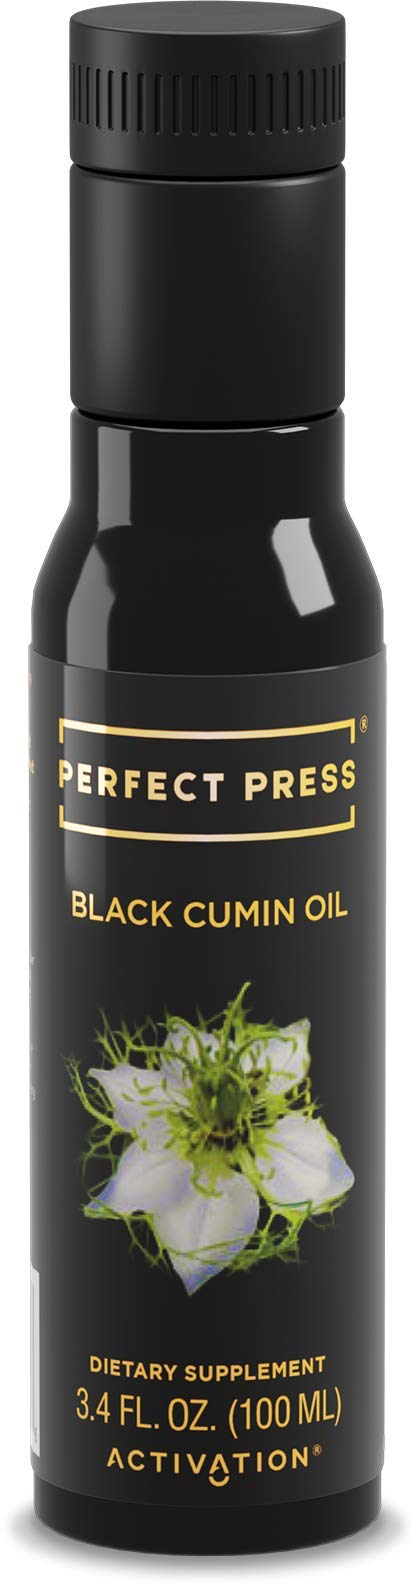 Activation Products, Perfect Press Black Cumin Seed Oil - Vegan, Organic and Gluten Free Pure Nigella Sativa - Digestive Support, Immune System Booster, Loaded with Vitamins B1 B2 B3, 100ml